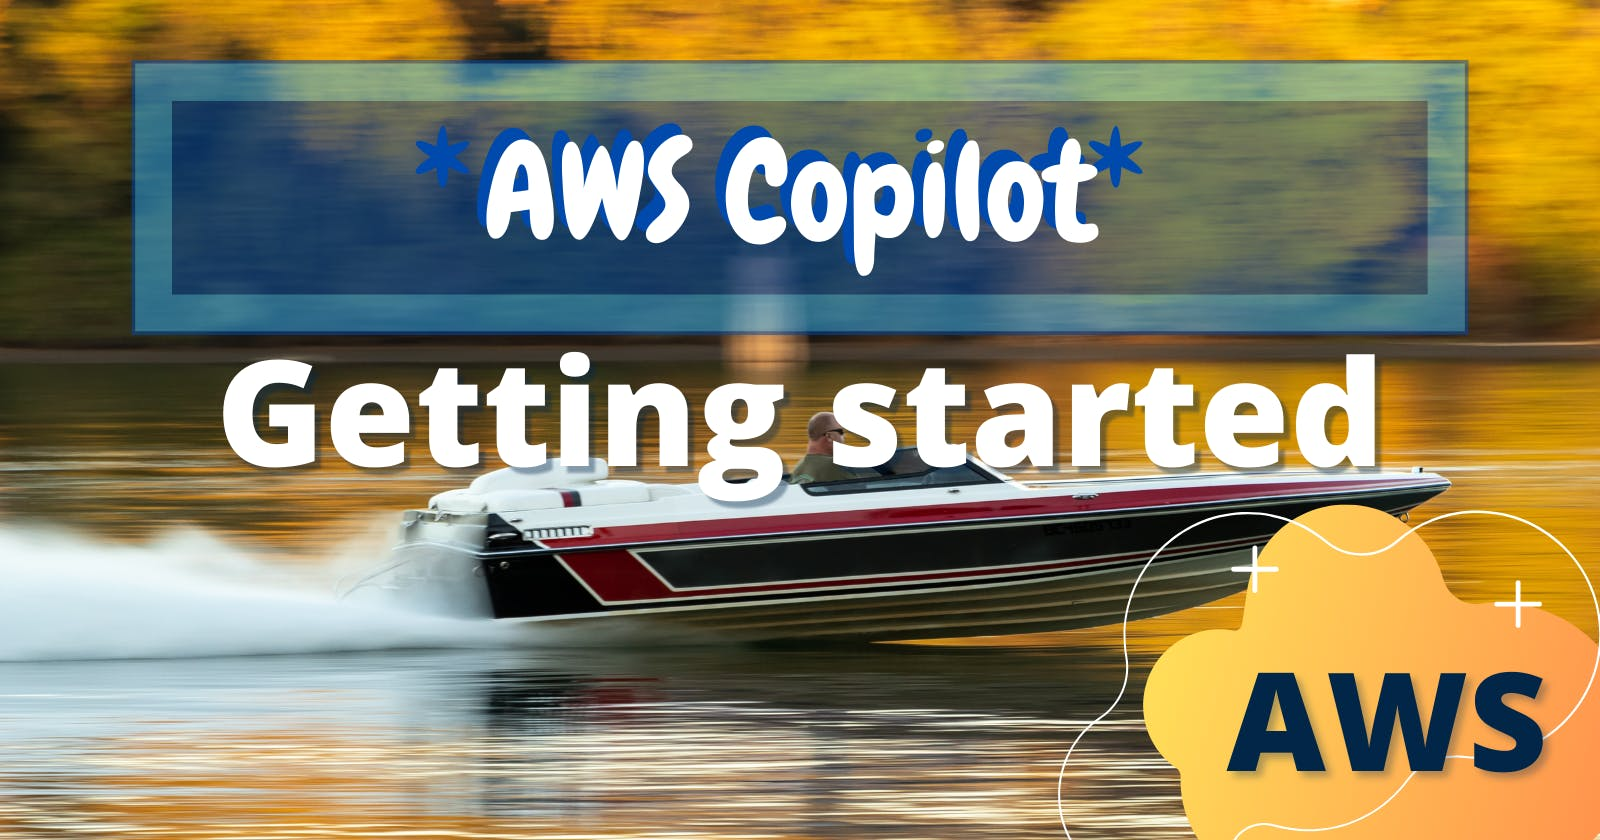 Pilot your containers like a boss with AWS Copilot!